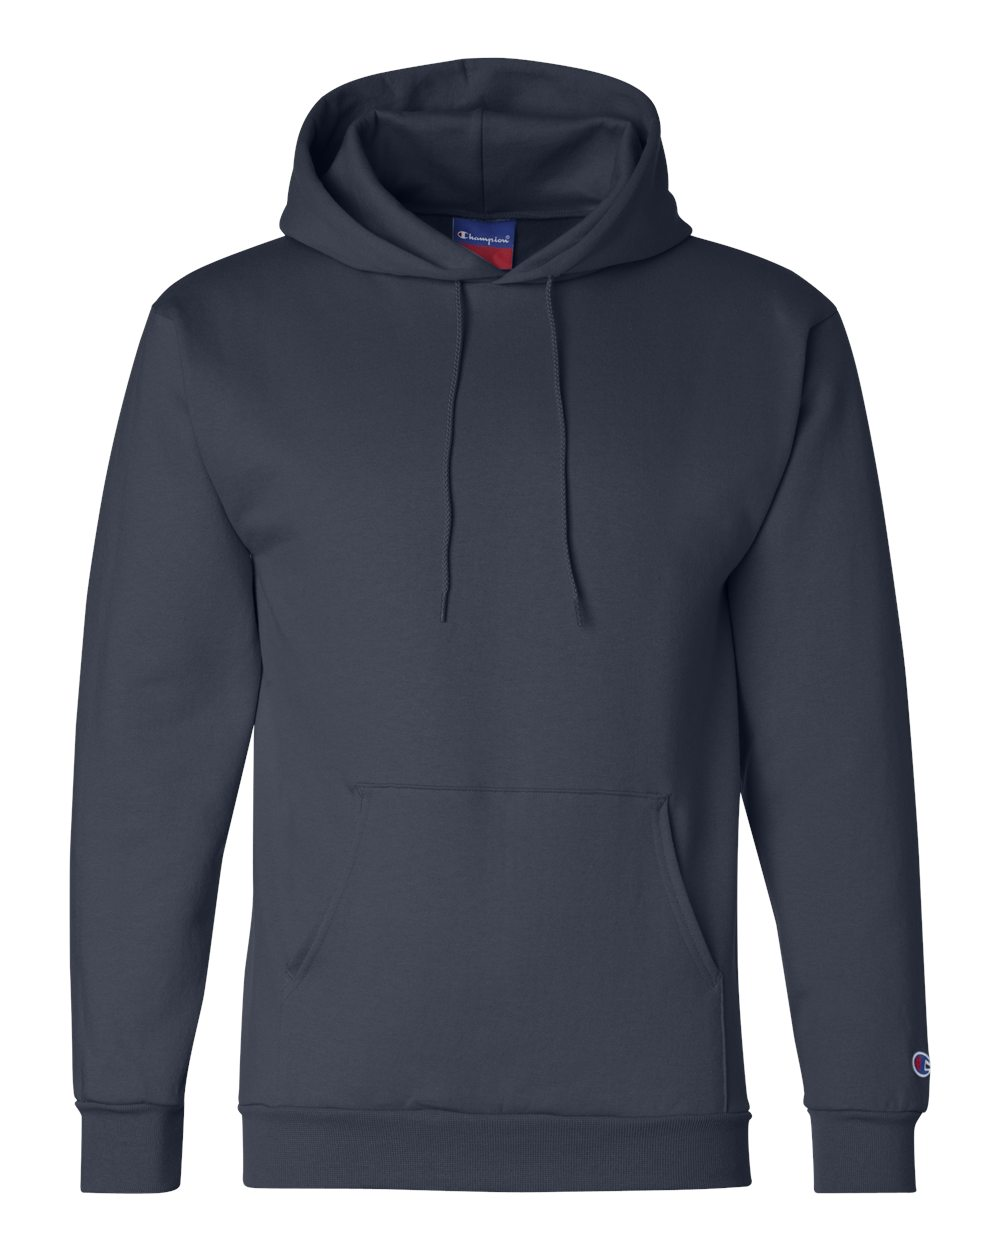 Champion-Mens-Double-Dry-Eco-Hooded-Sweatshirt-Hoodie-Pullover-S700-up-to-3XL miniature 27